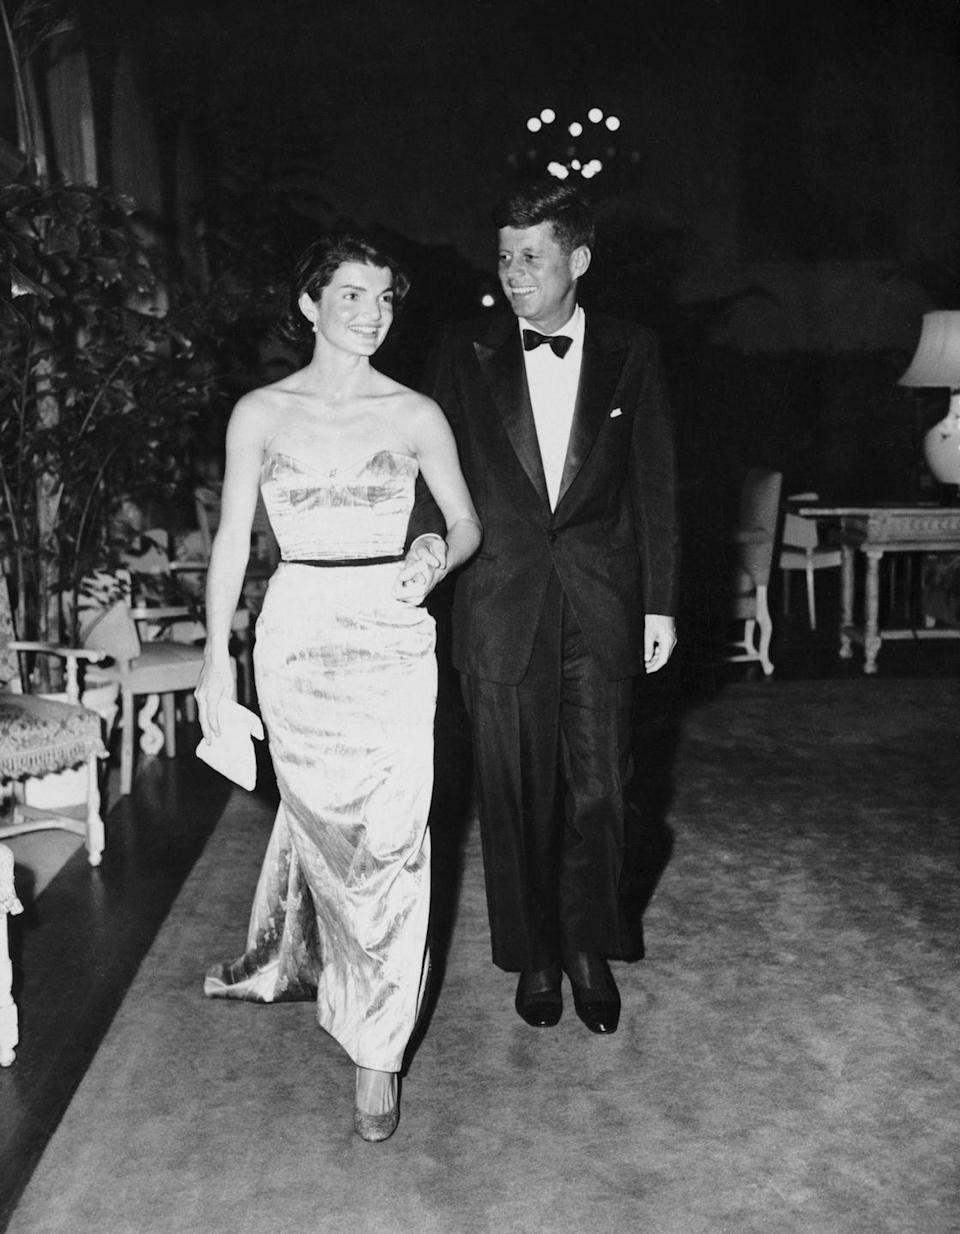 <p>Looking stunning in a metallic strapless and form-fitting gown, Jackie Kennedy walks with her husband, the first Roman Catholic elected as President of the United States. </p>